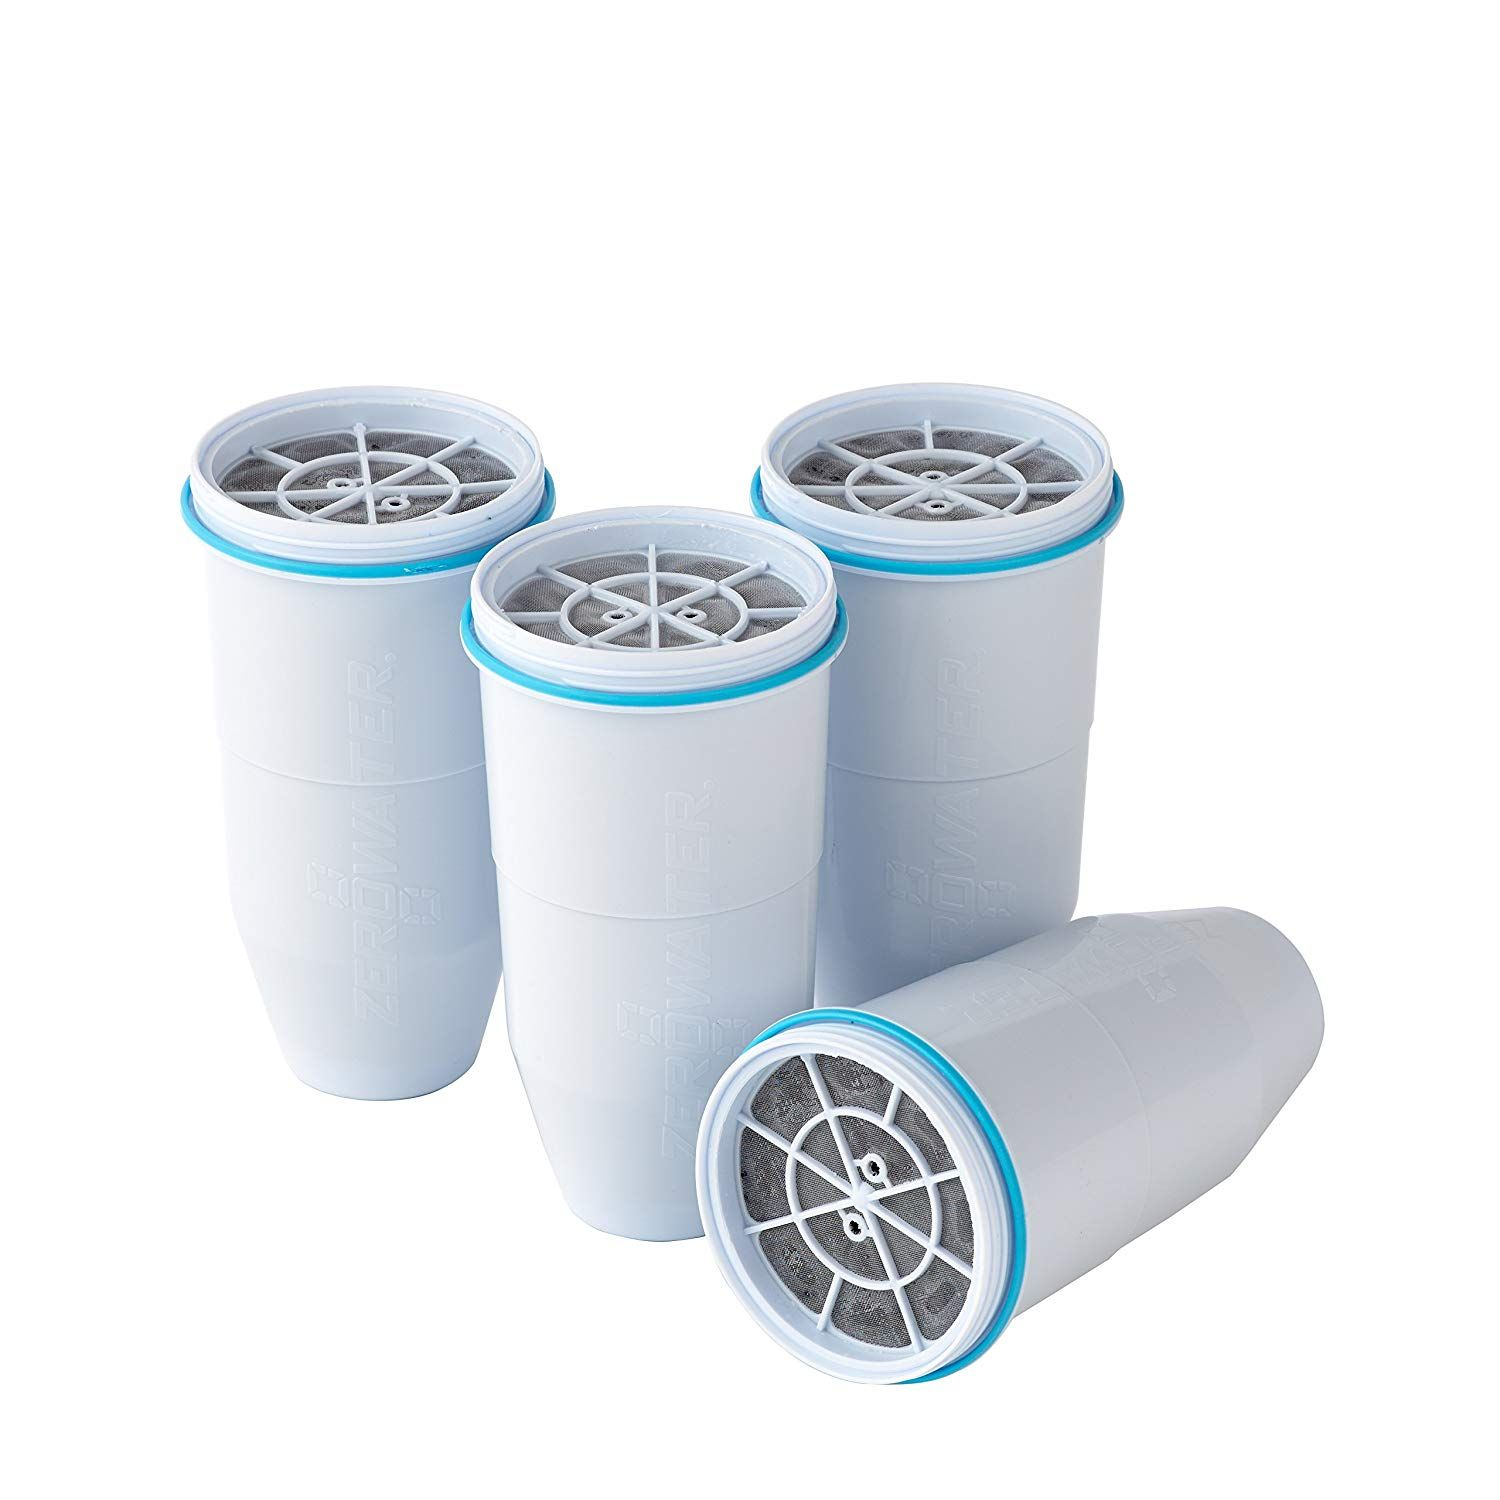 Zerowater Zr 006 Replacement Water Filter Cartridges Pack Of 4 Amazon Co Uk Kitchen Home Replacement Filter Water Filter Pitcher Water Filter